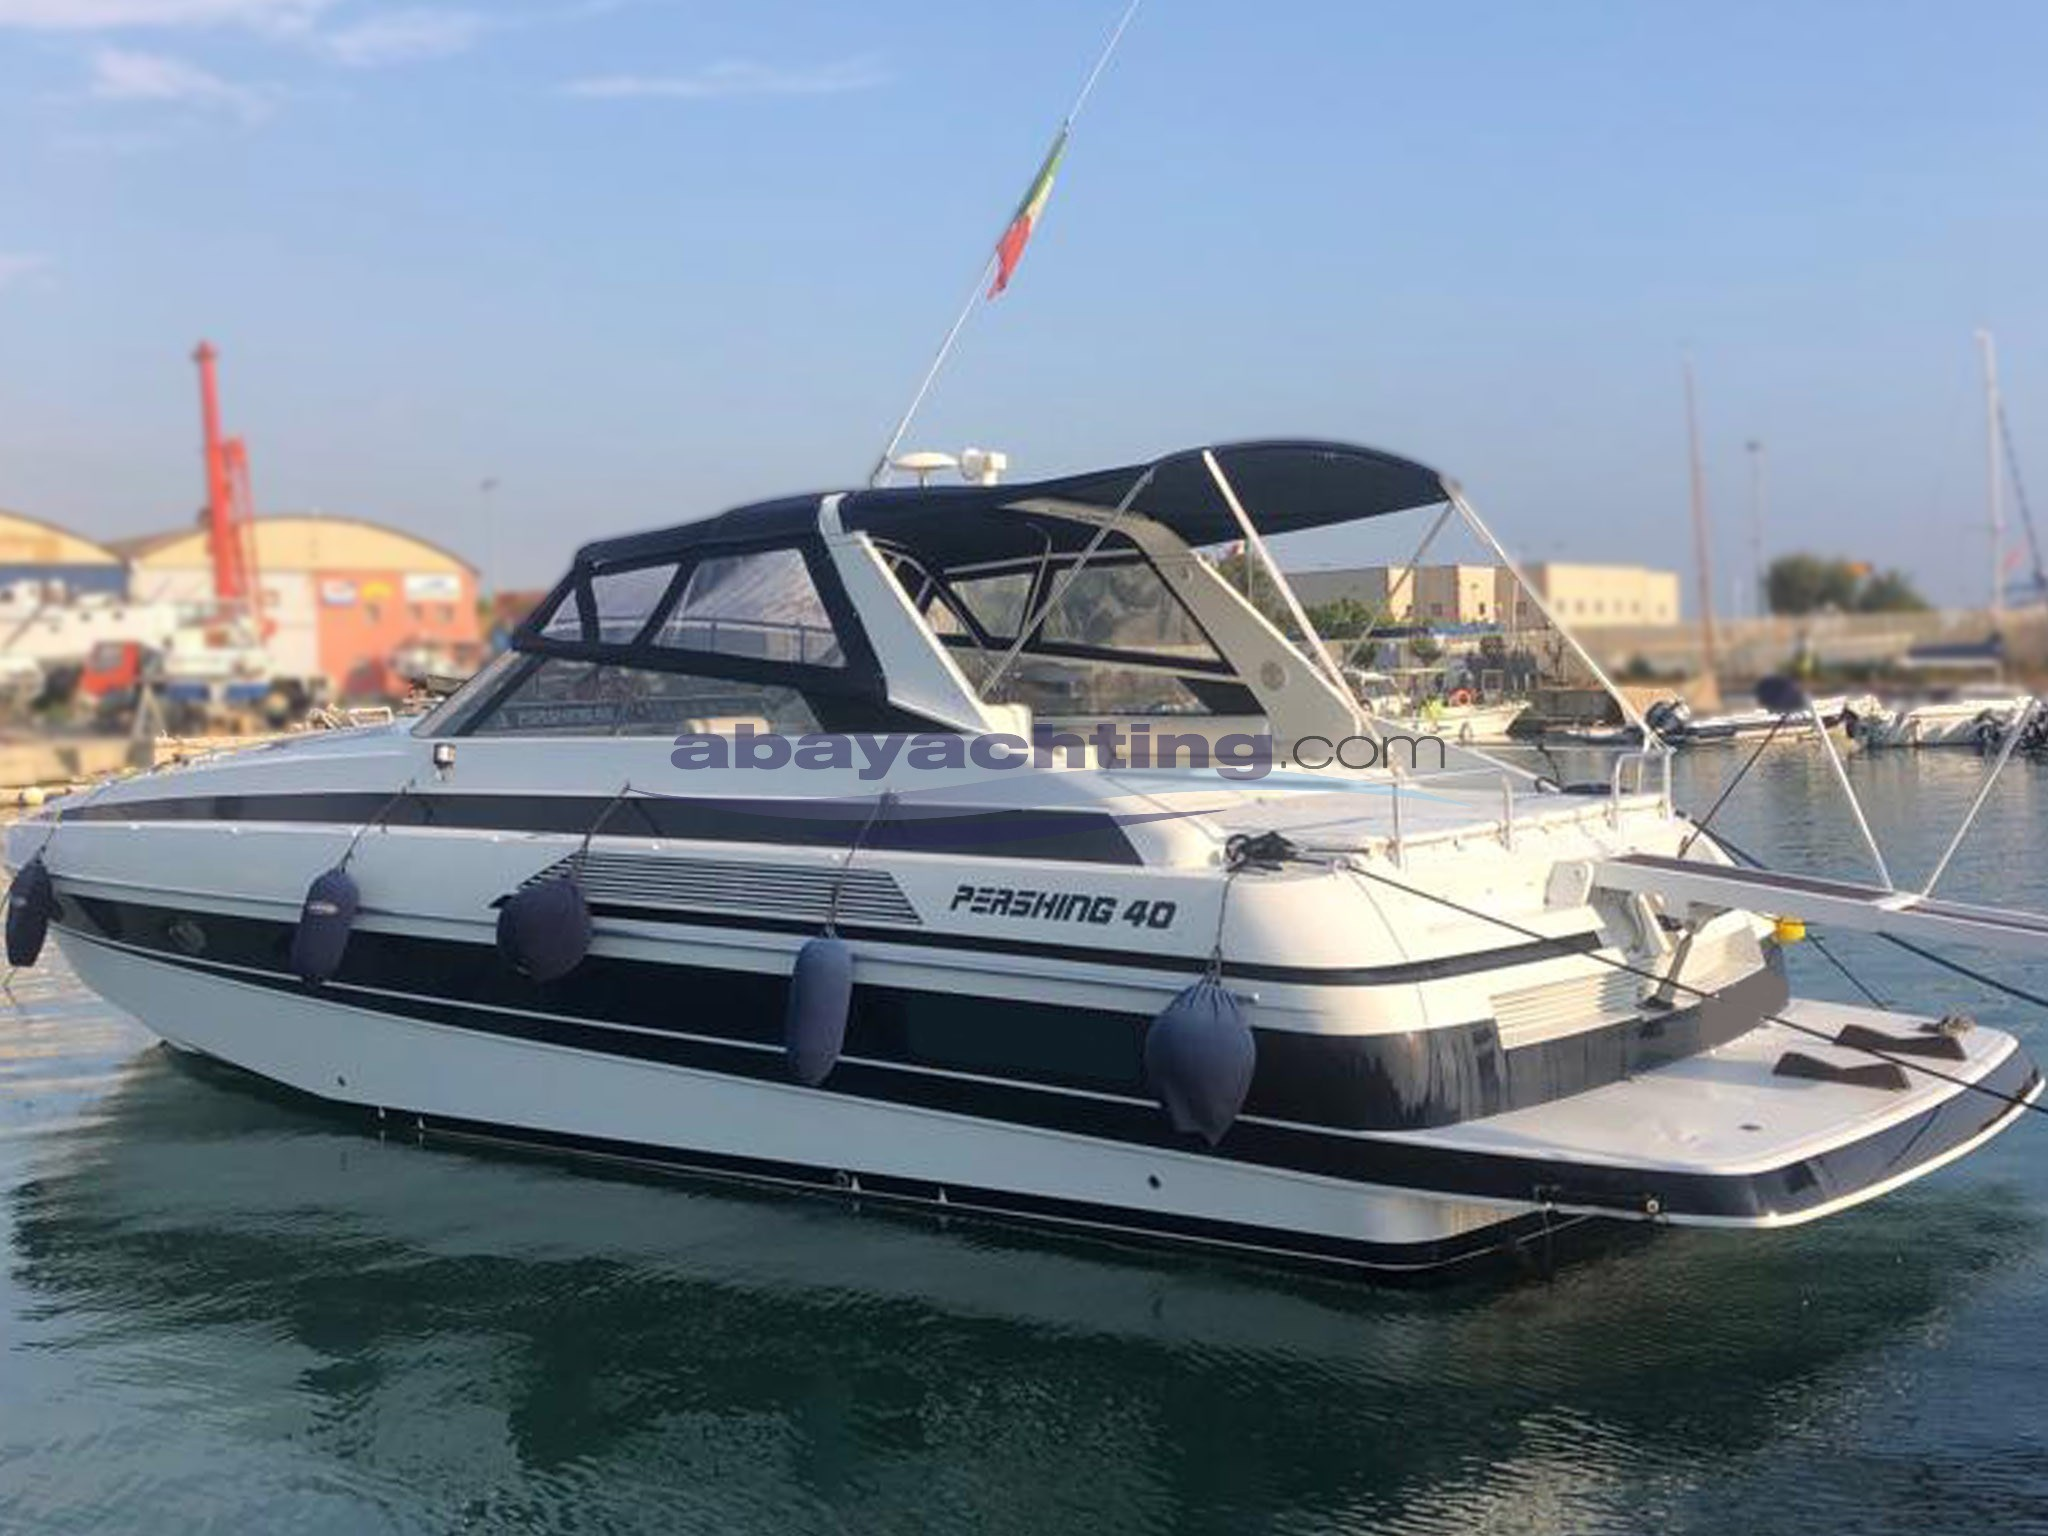 Nuovo arrivo Pershing 40 Open